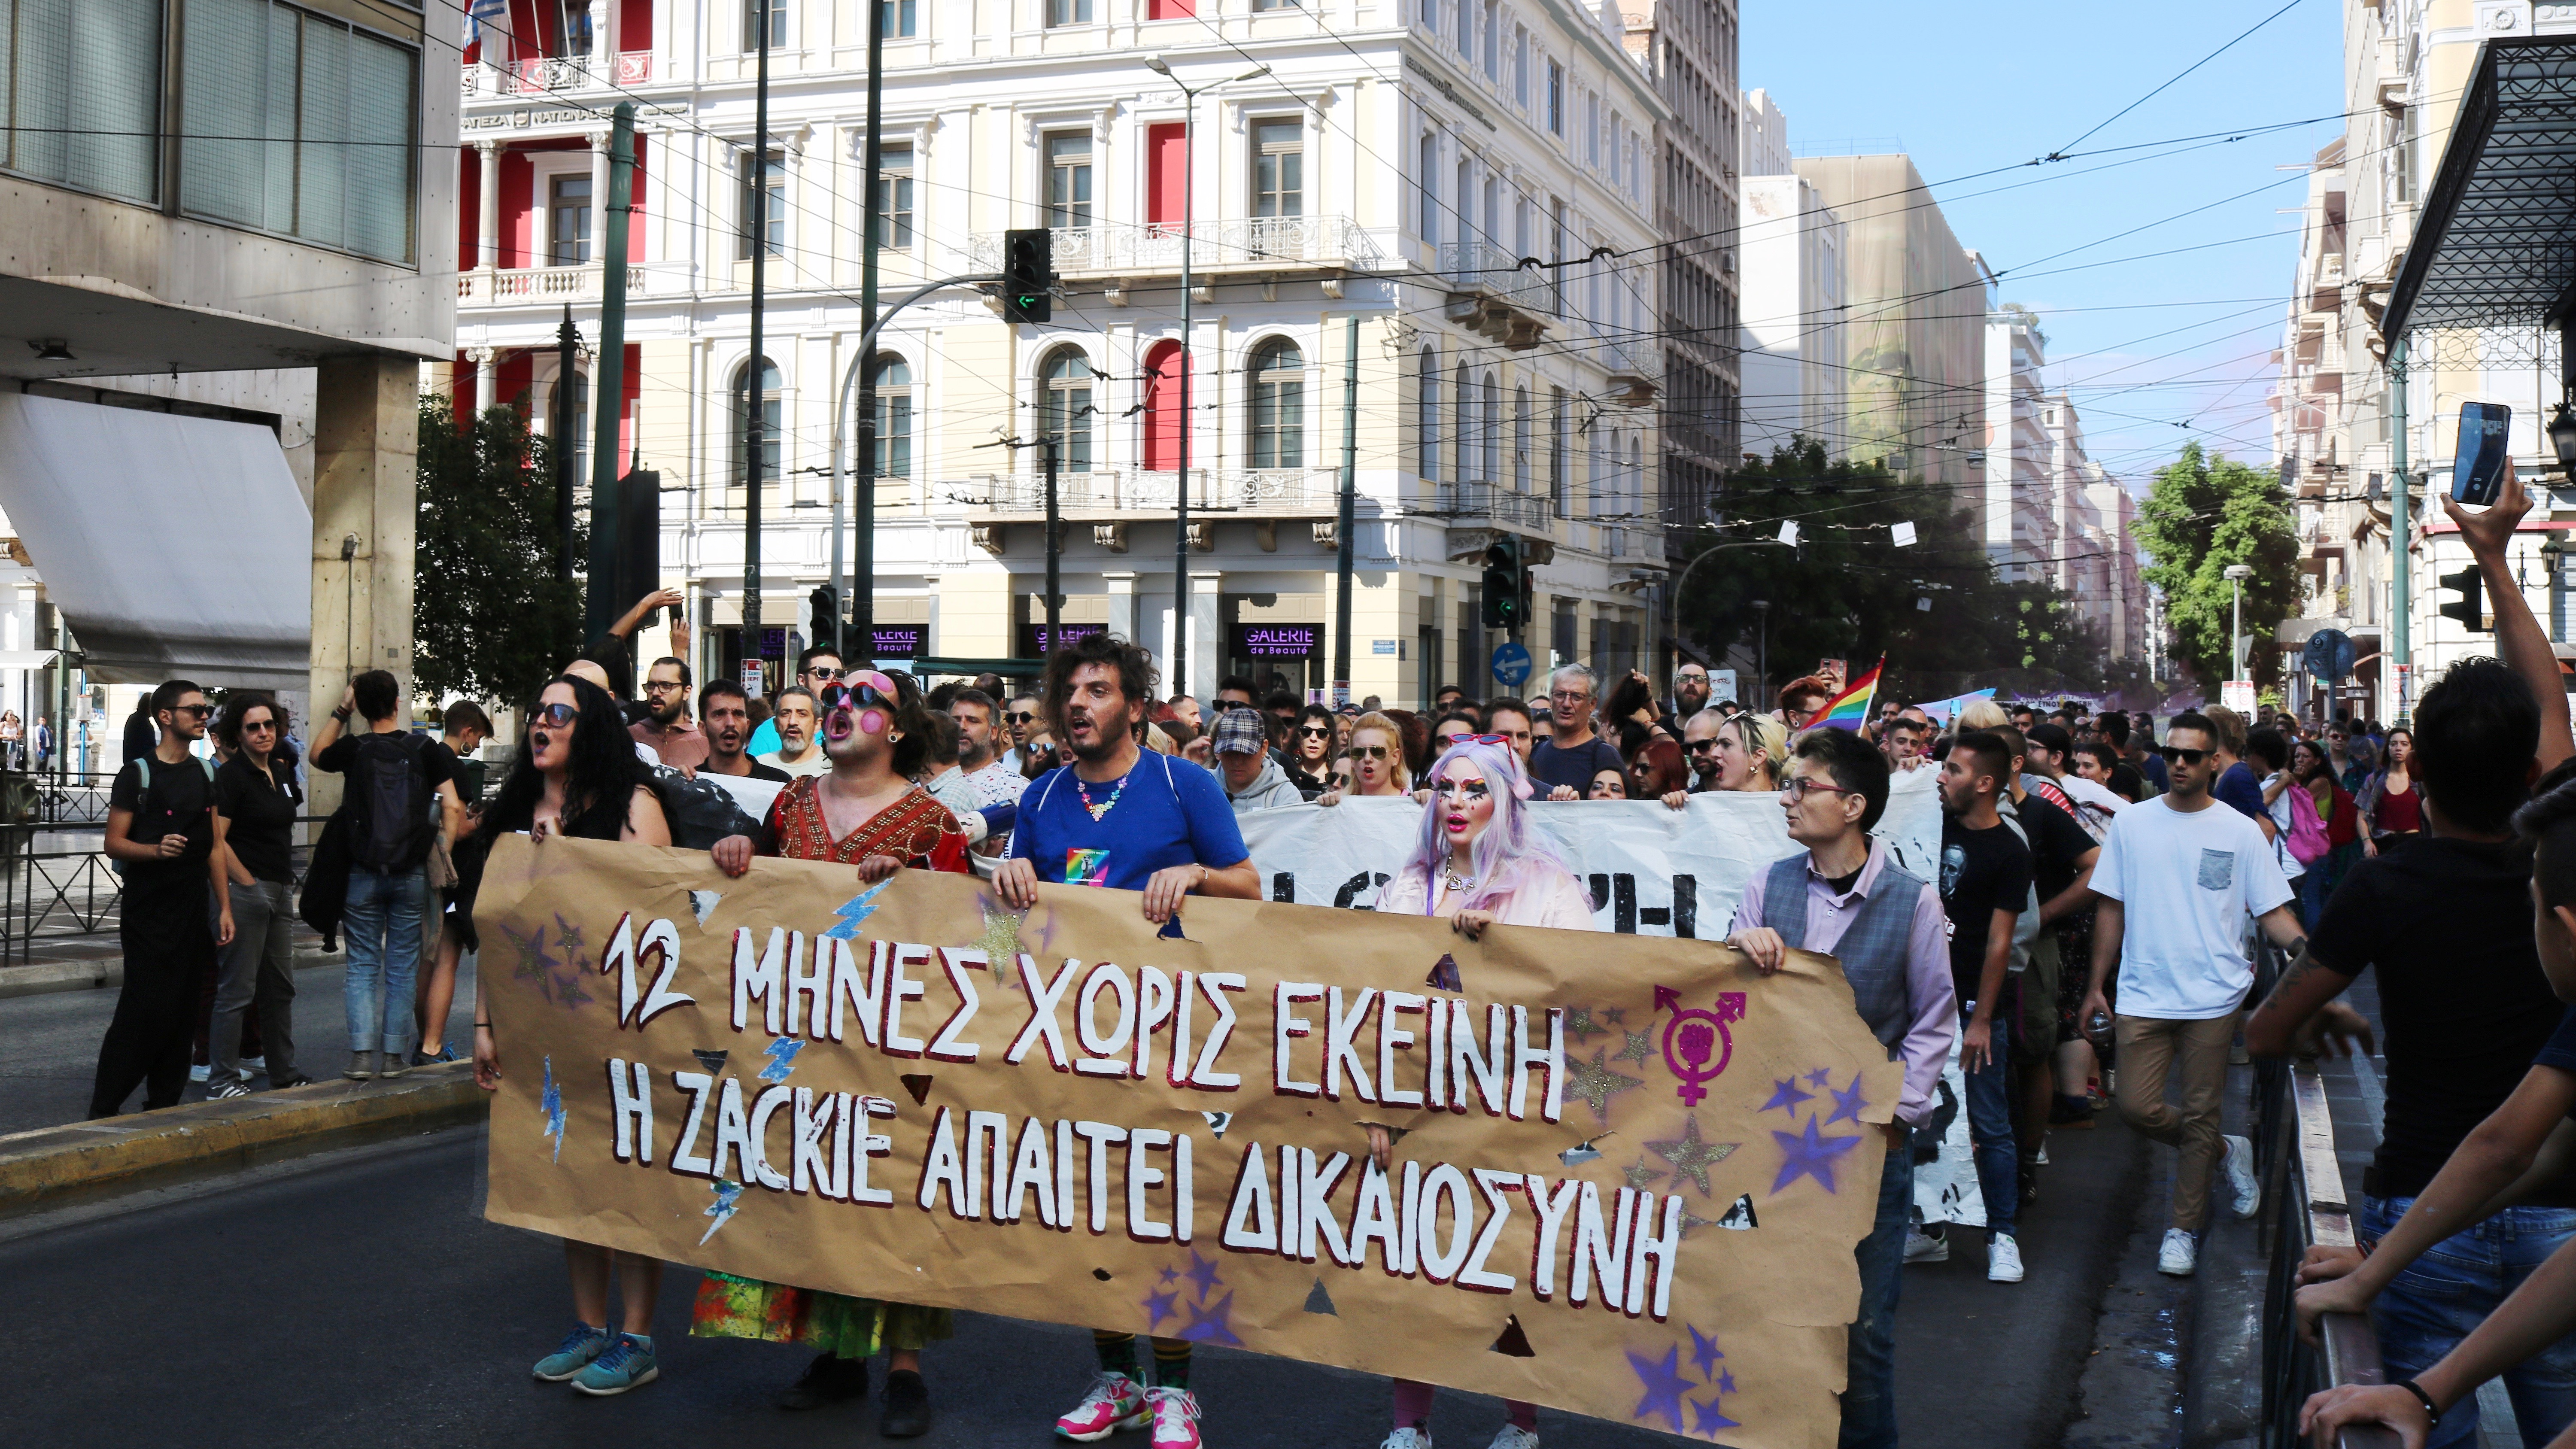 Marchers stand behind a large white banner as they move through a street